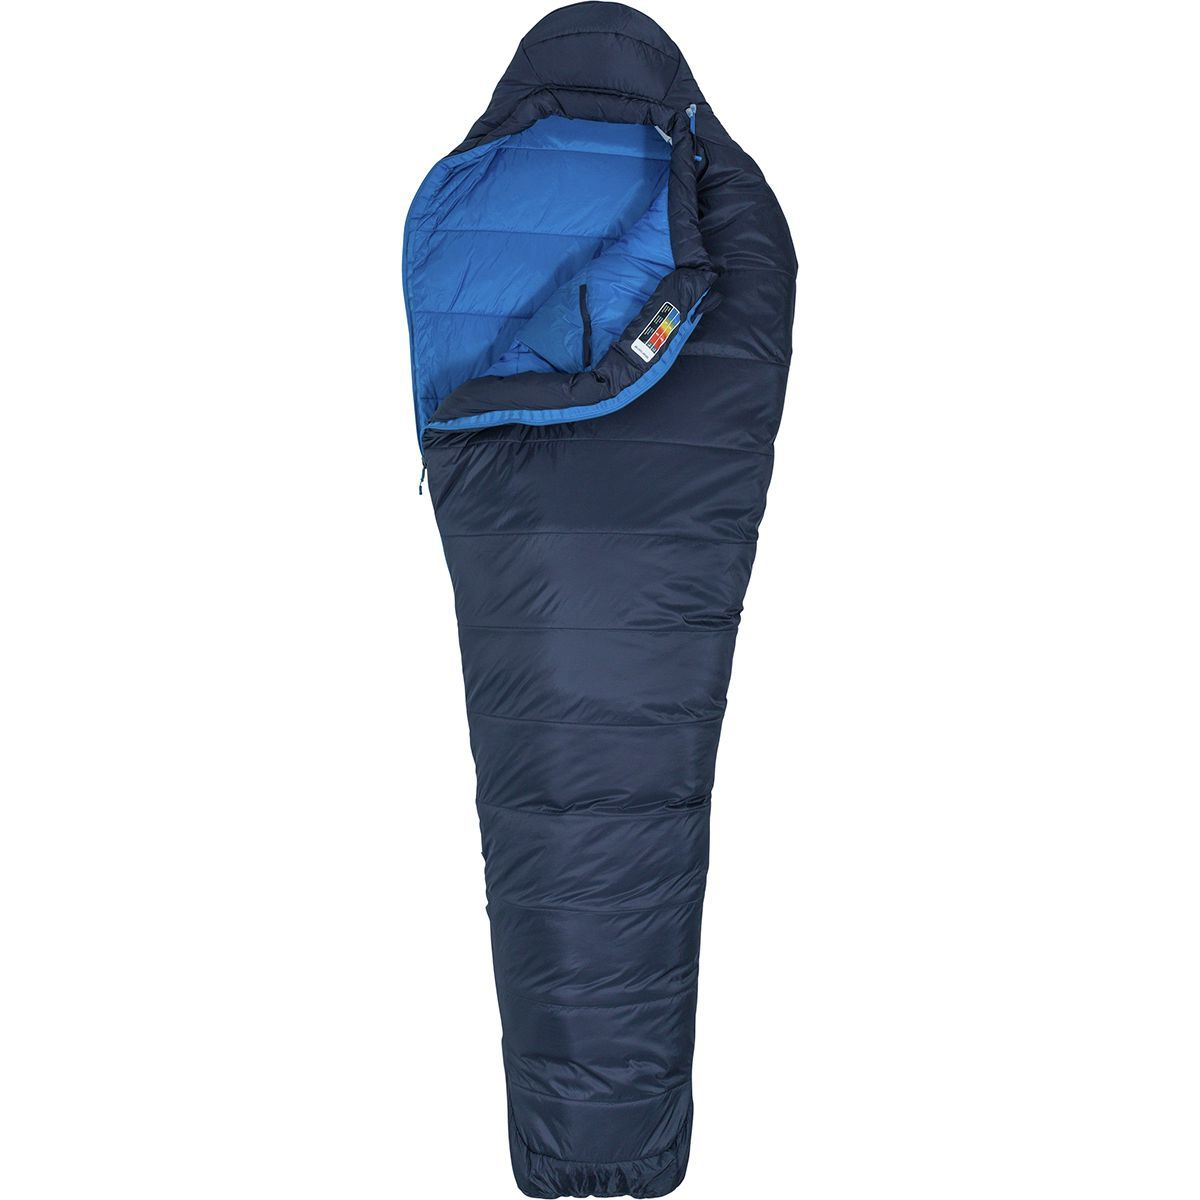 Marmot Ultra Elite 20 Sleeping Bag: 20 Degree Synthetic